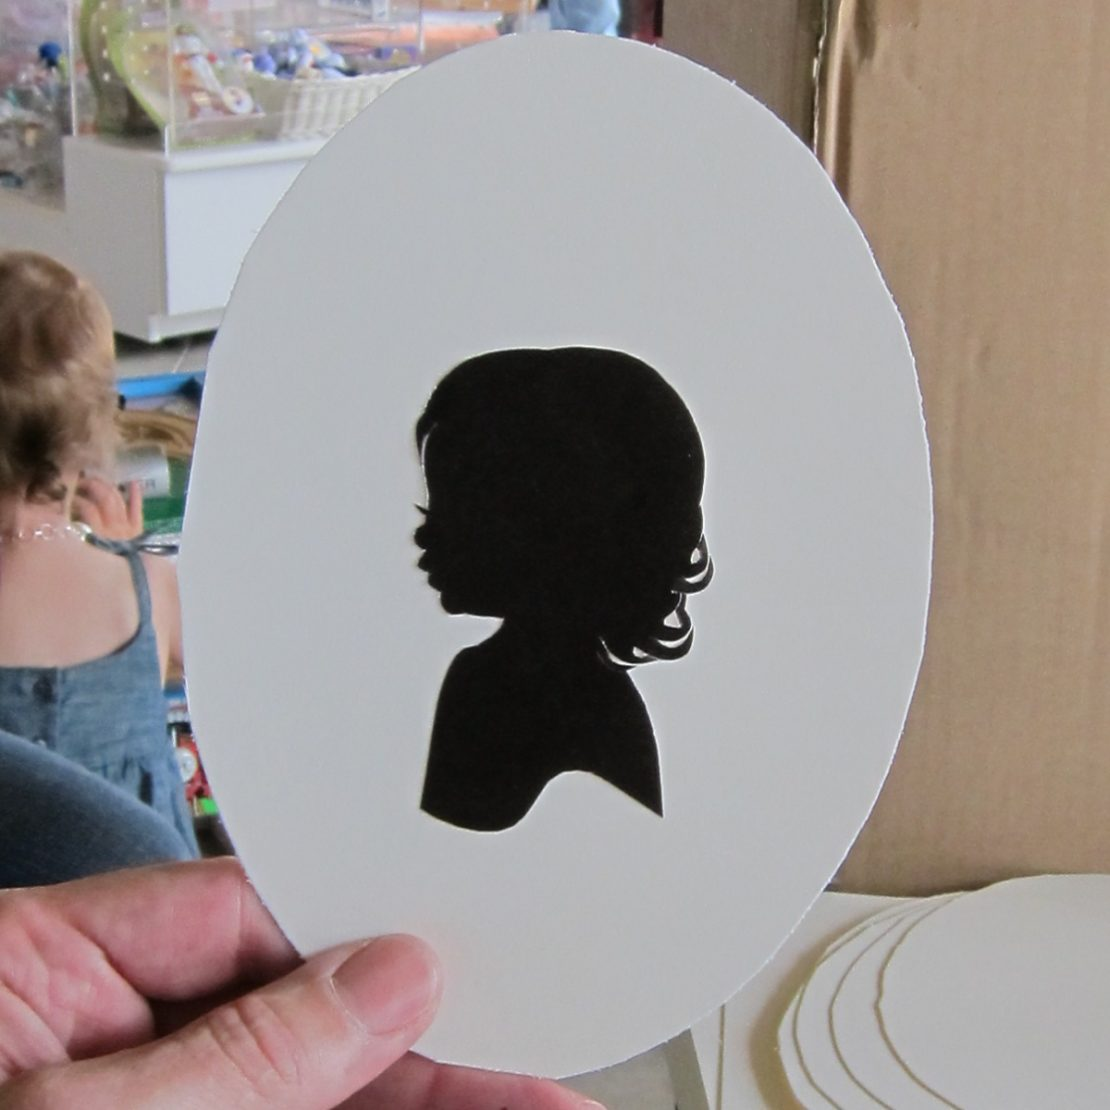 Completed silhouette cut by Erik Johnson